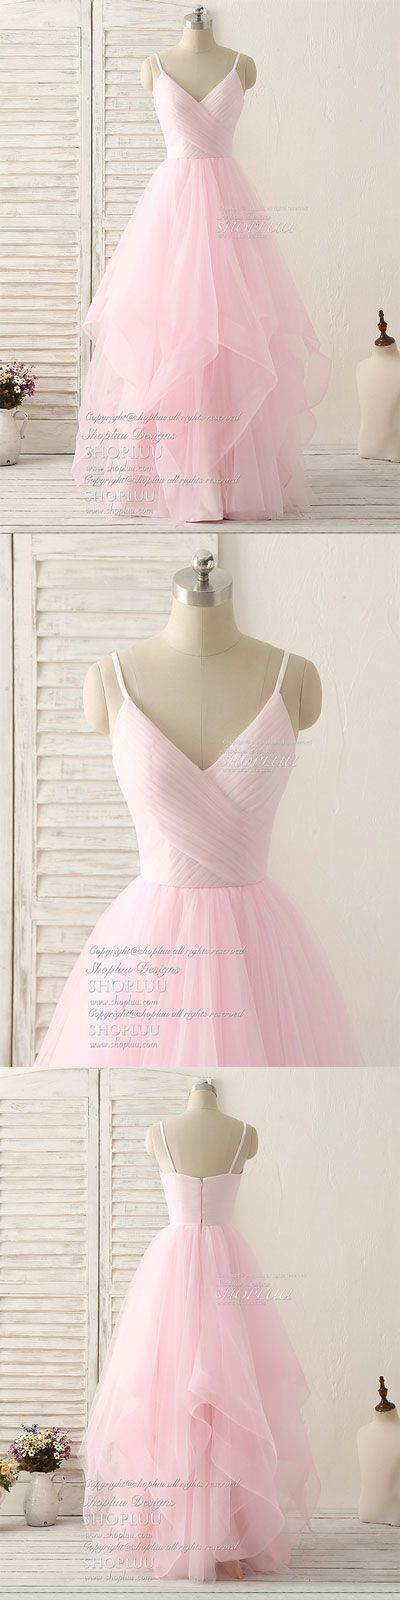 Pink v neck tulle long prom dress simple pink tulle evening dress, pink bridesmaid dress